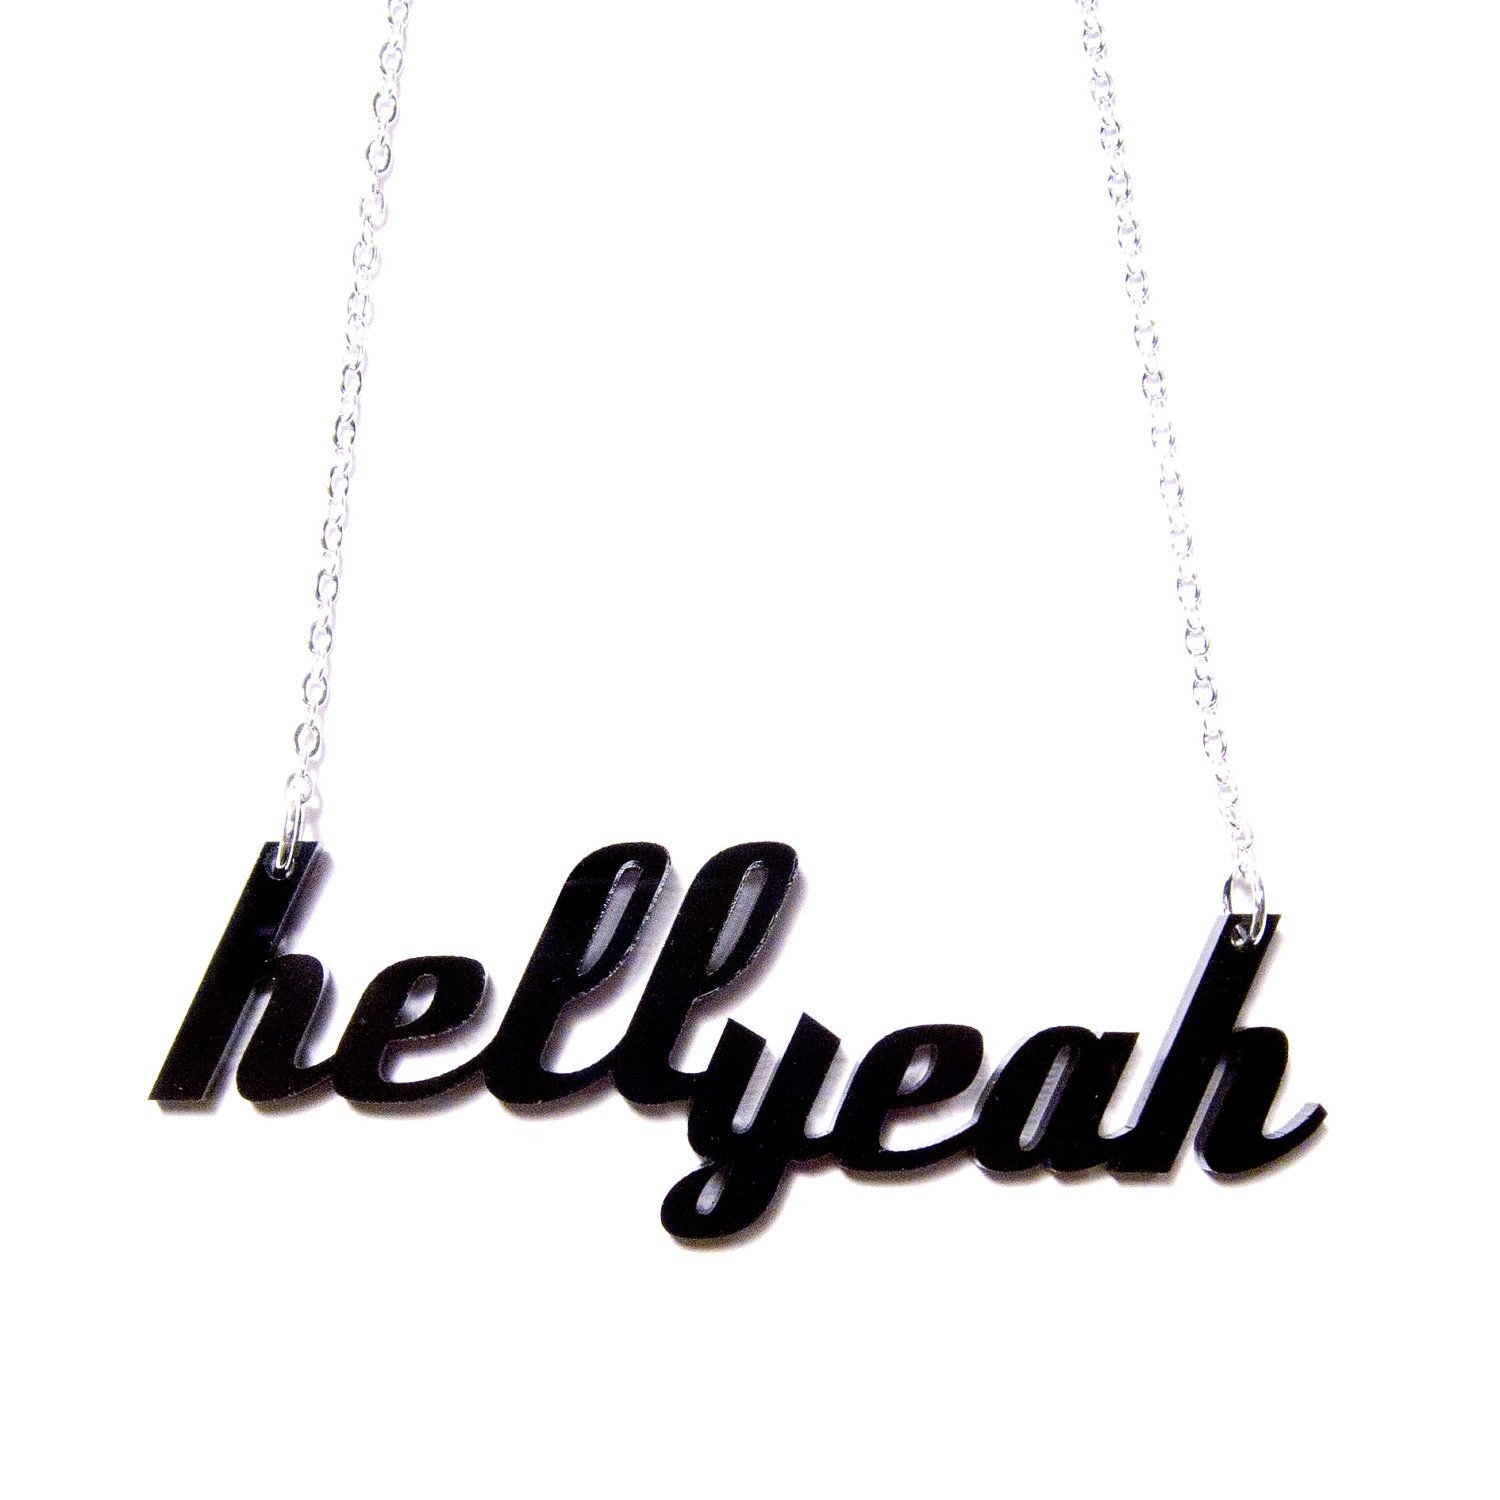 hellyeah acrylic necklace by plastique on Etsy, $22.00